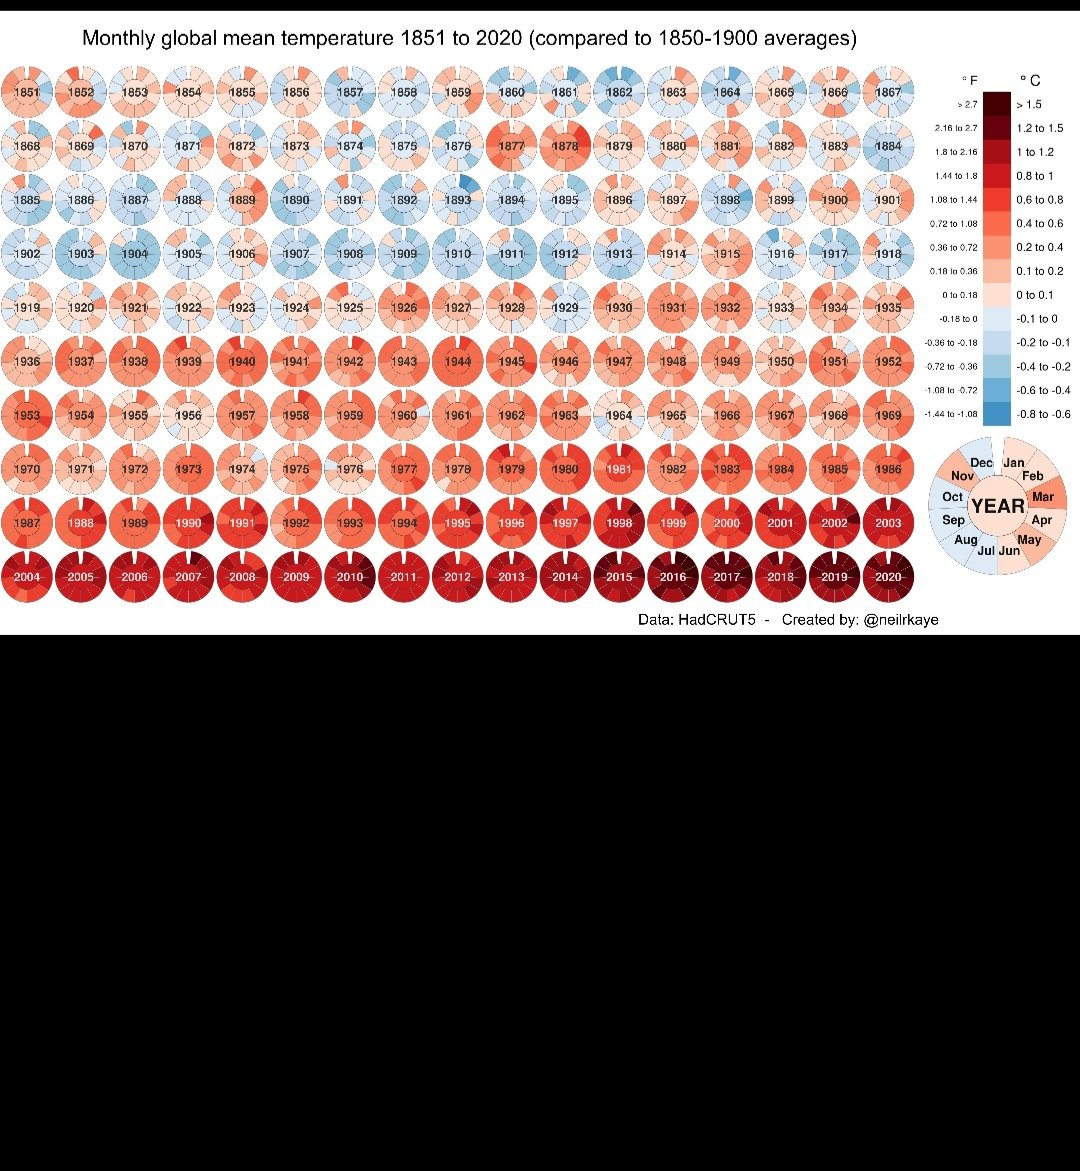 For all the global warming denialists, we have assembled an easy to understand picture of the reality of global warming from 1851-2020.  If you can't understand this chart, you really must not be trying. #climatechange #BidenHarrisInauguration #bethechange